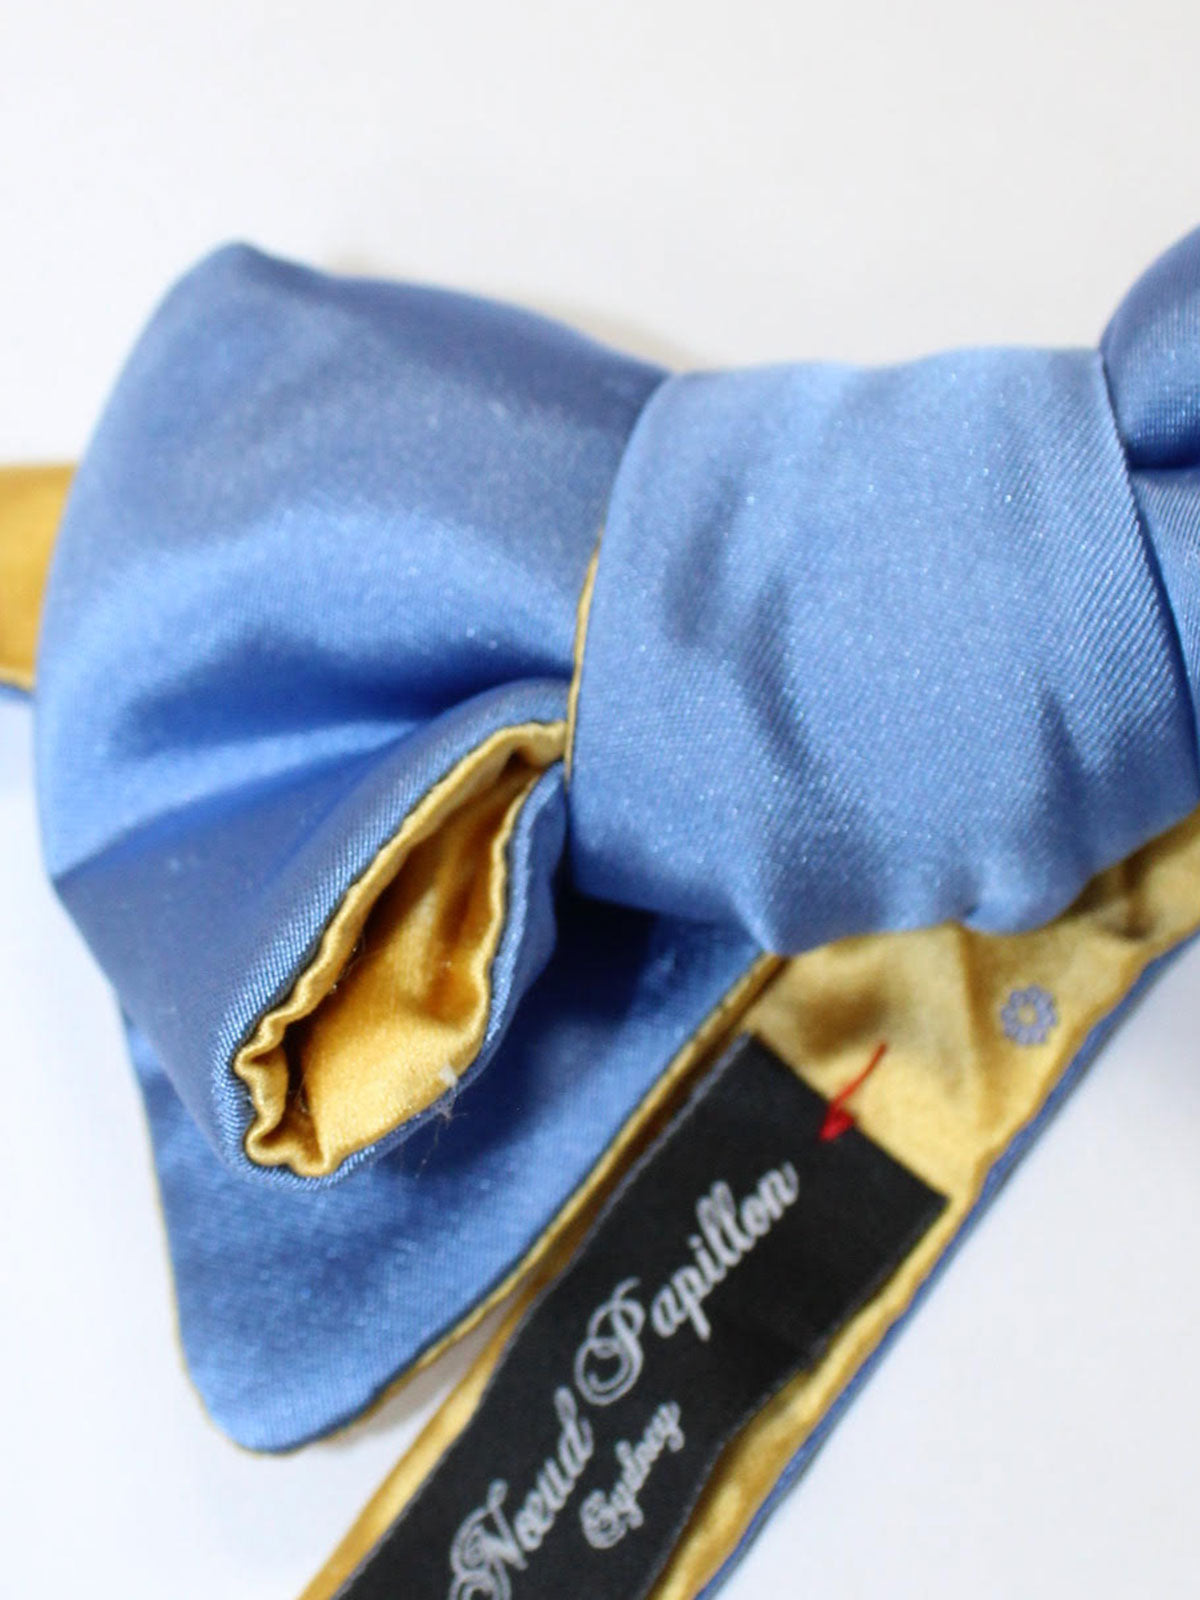 Le Noeud Papillon Bow Tie Blue Yellow Solid - Butterfly Self Tie